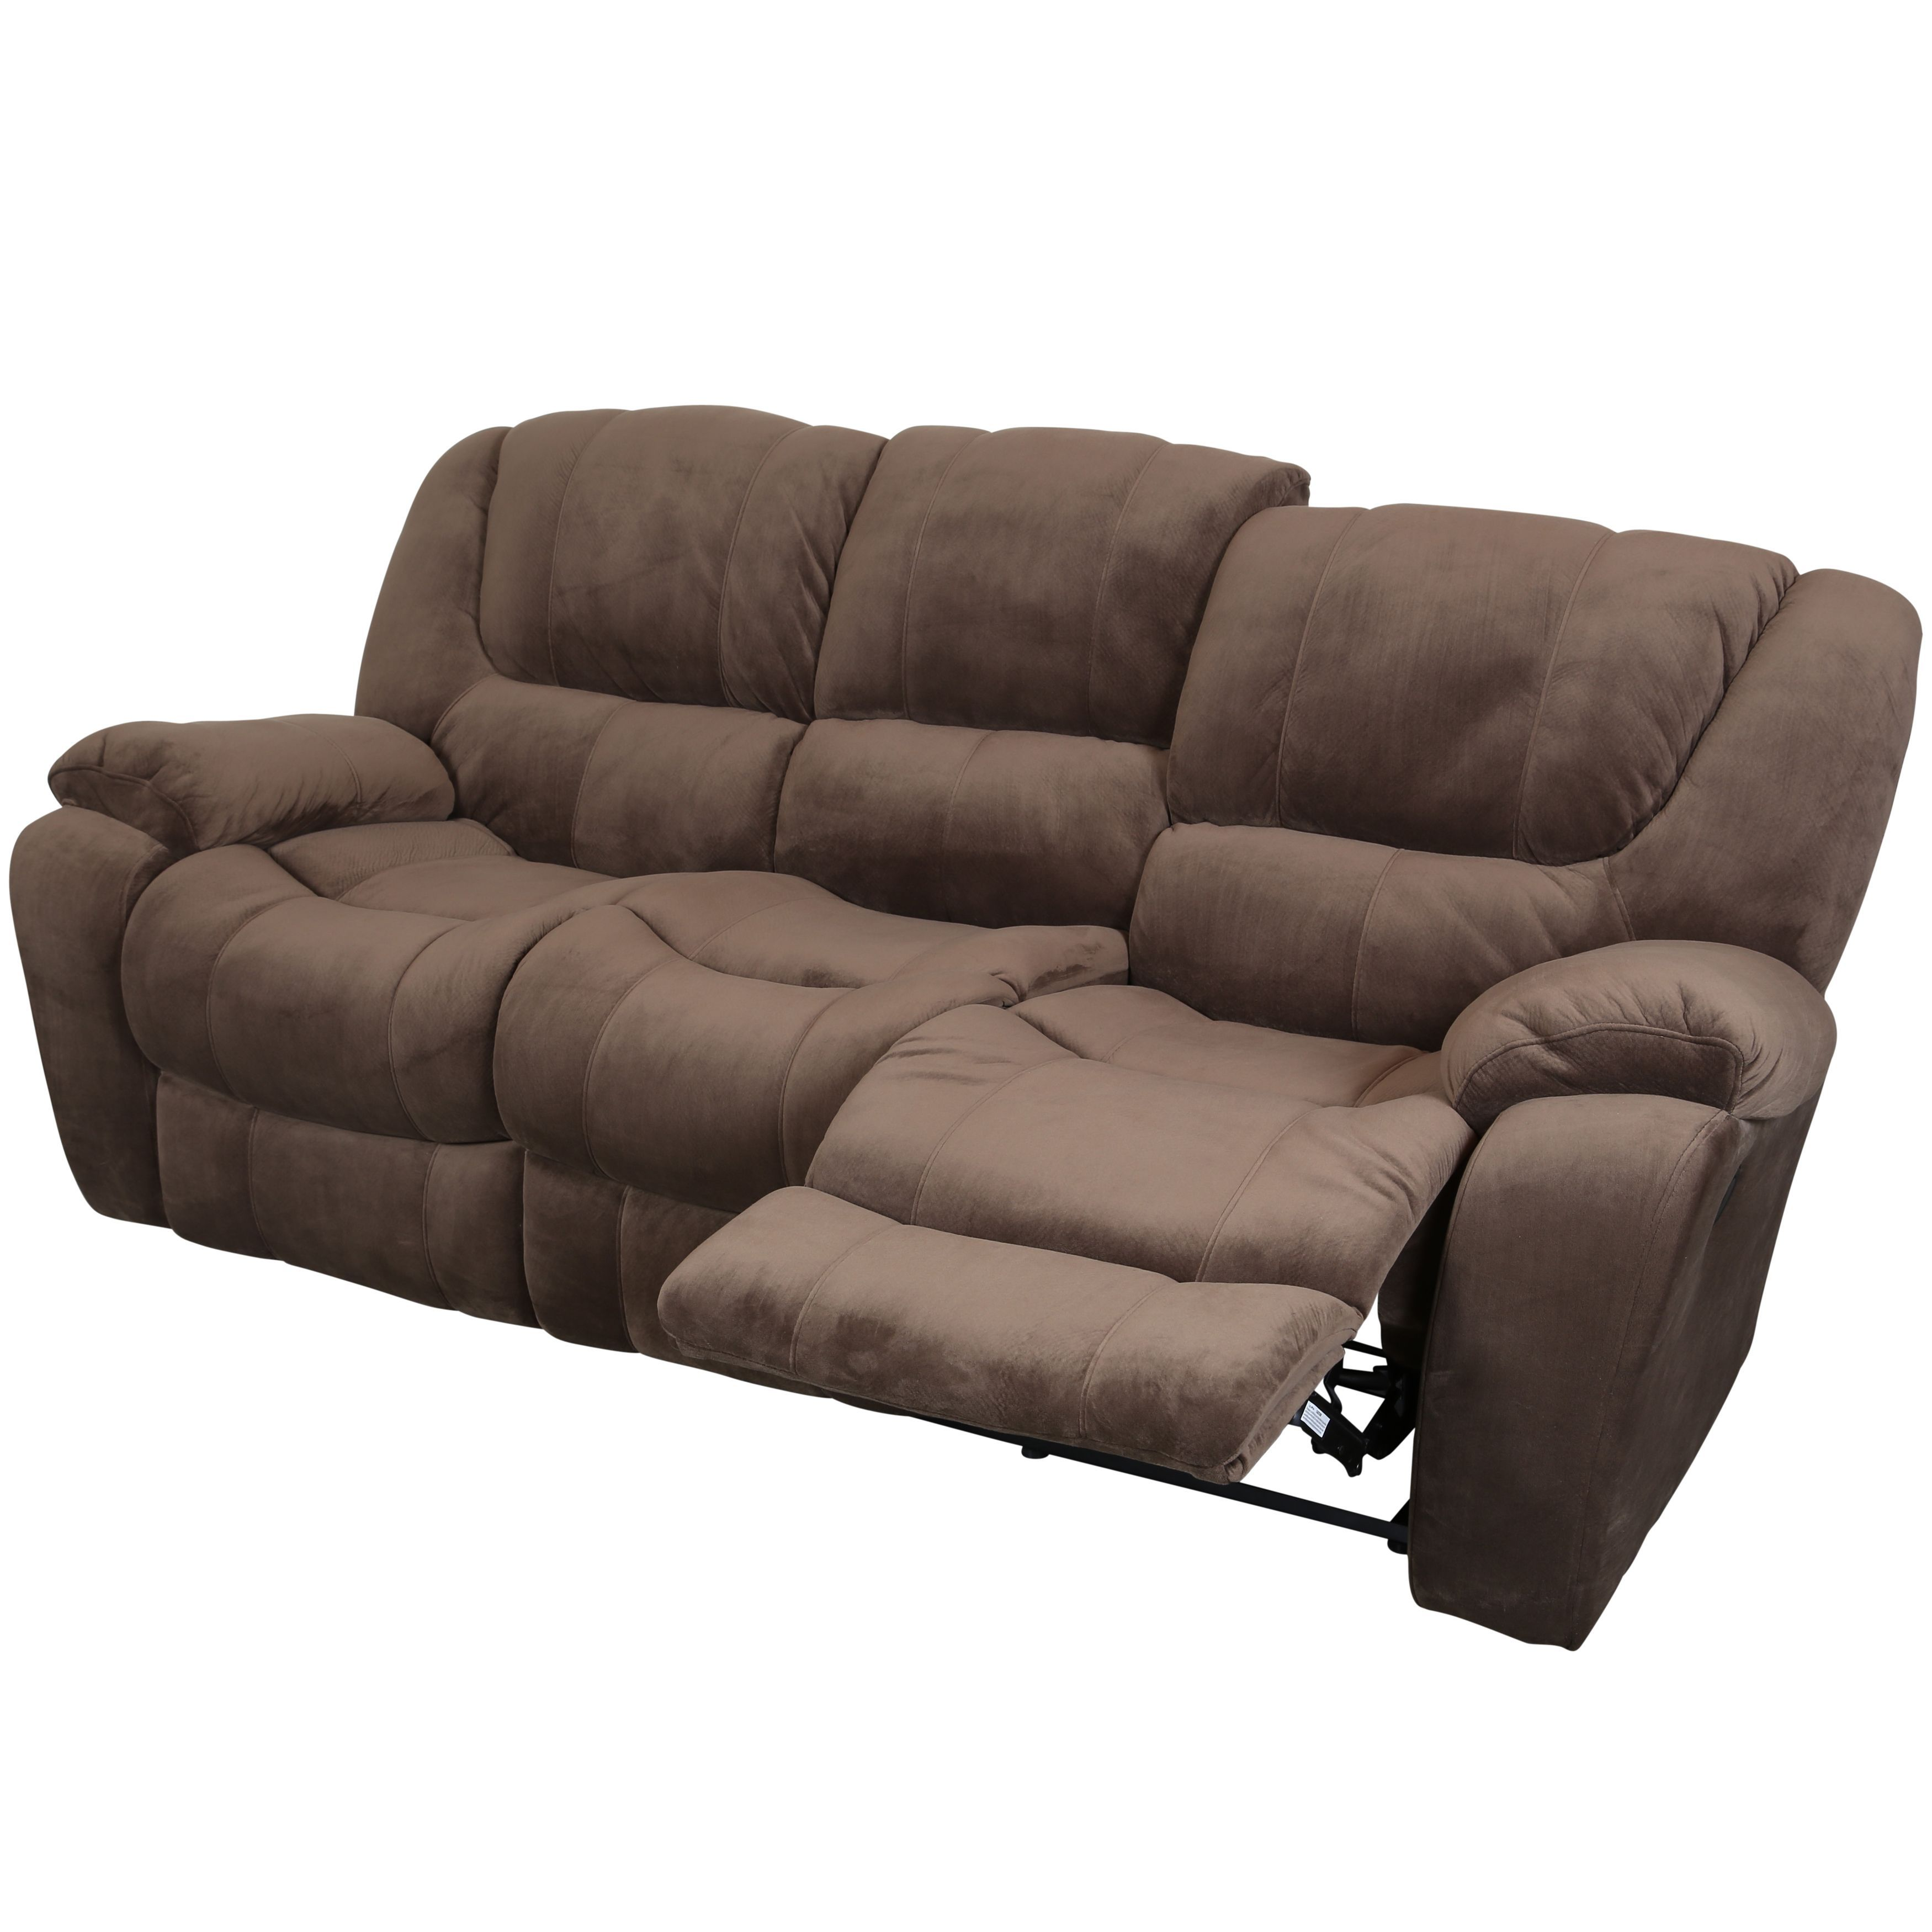 Sofa Foam Online Atherton Home Manhattan Convertible Futon Bed And Lounger Porter Elliott Cocoa Dual Reclining Deep Pile Microfiber